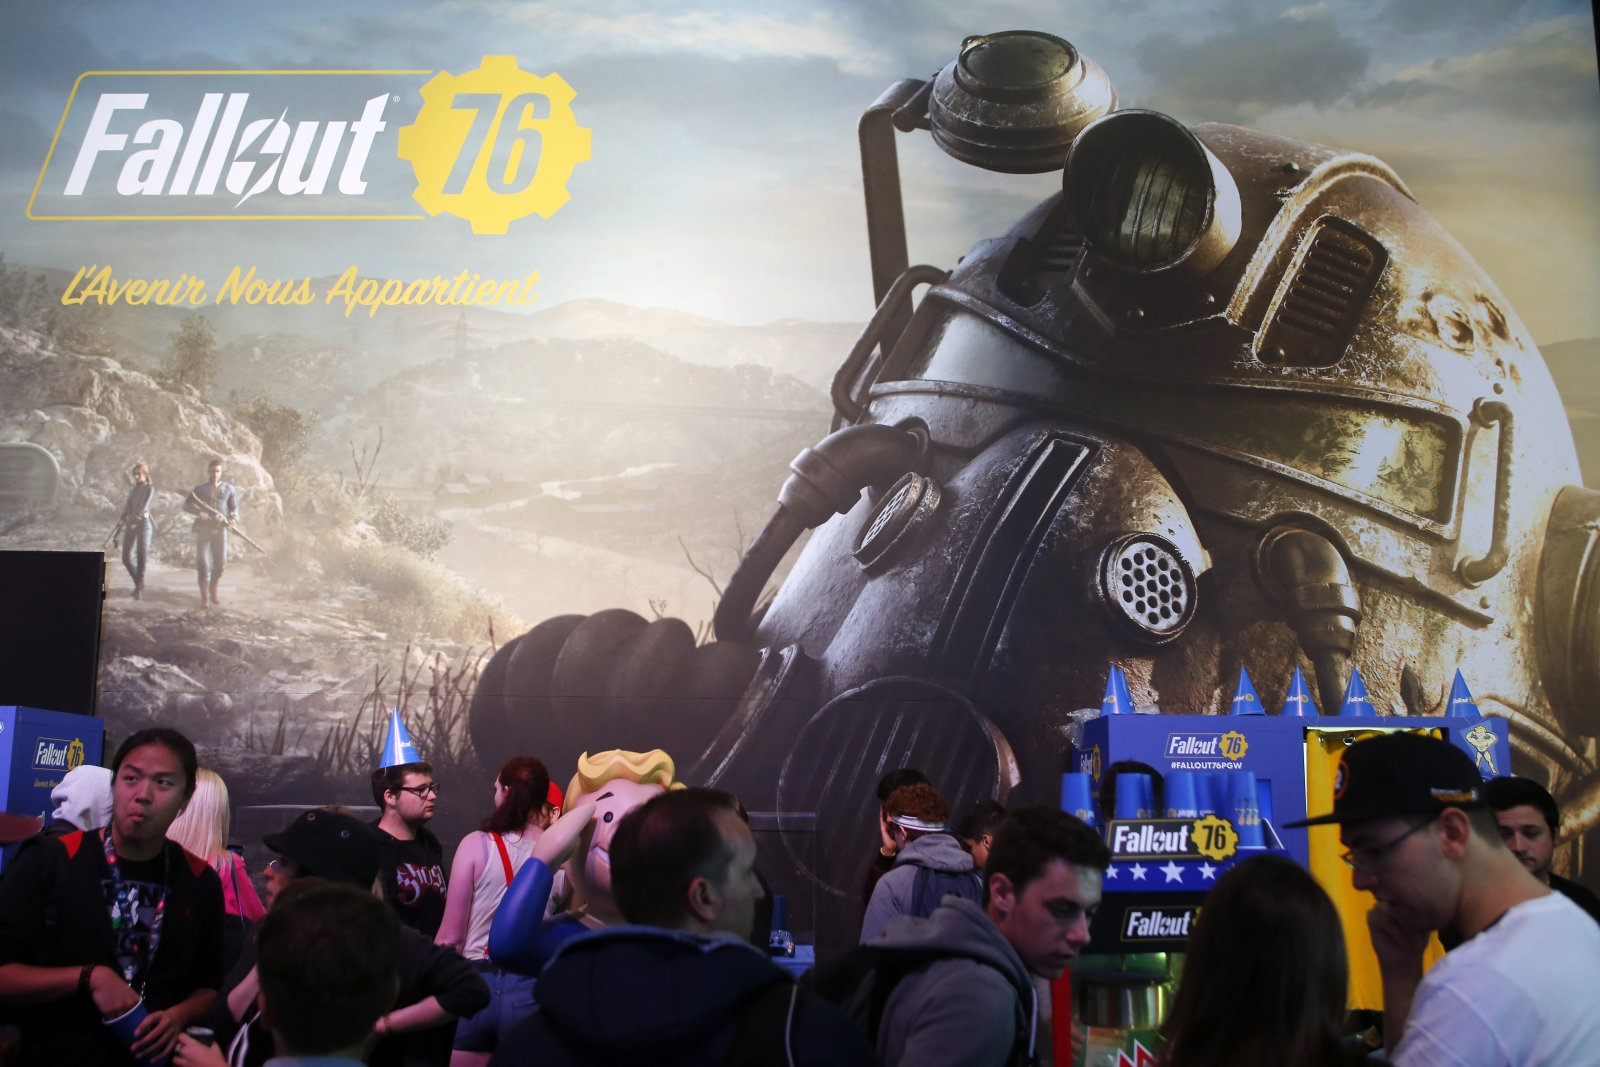 'Fallout 76' won't come to the Switch because it 'wasn't doable' | DeviceDaily.com